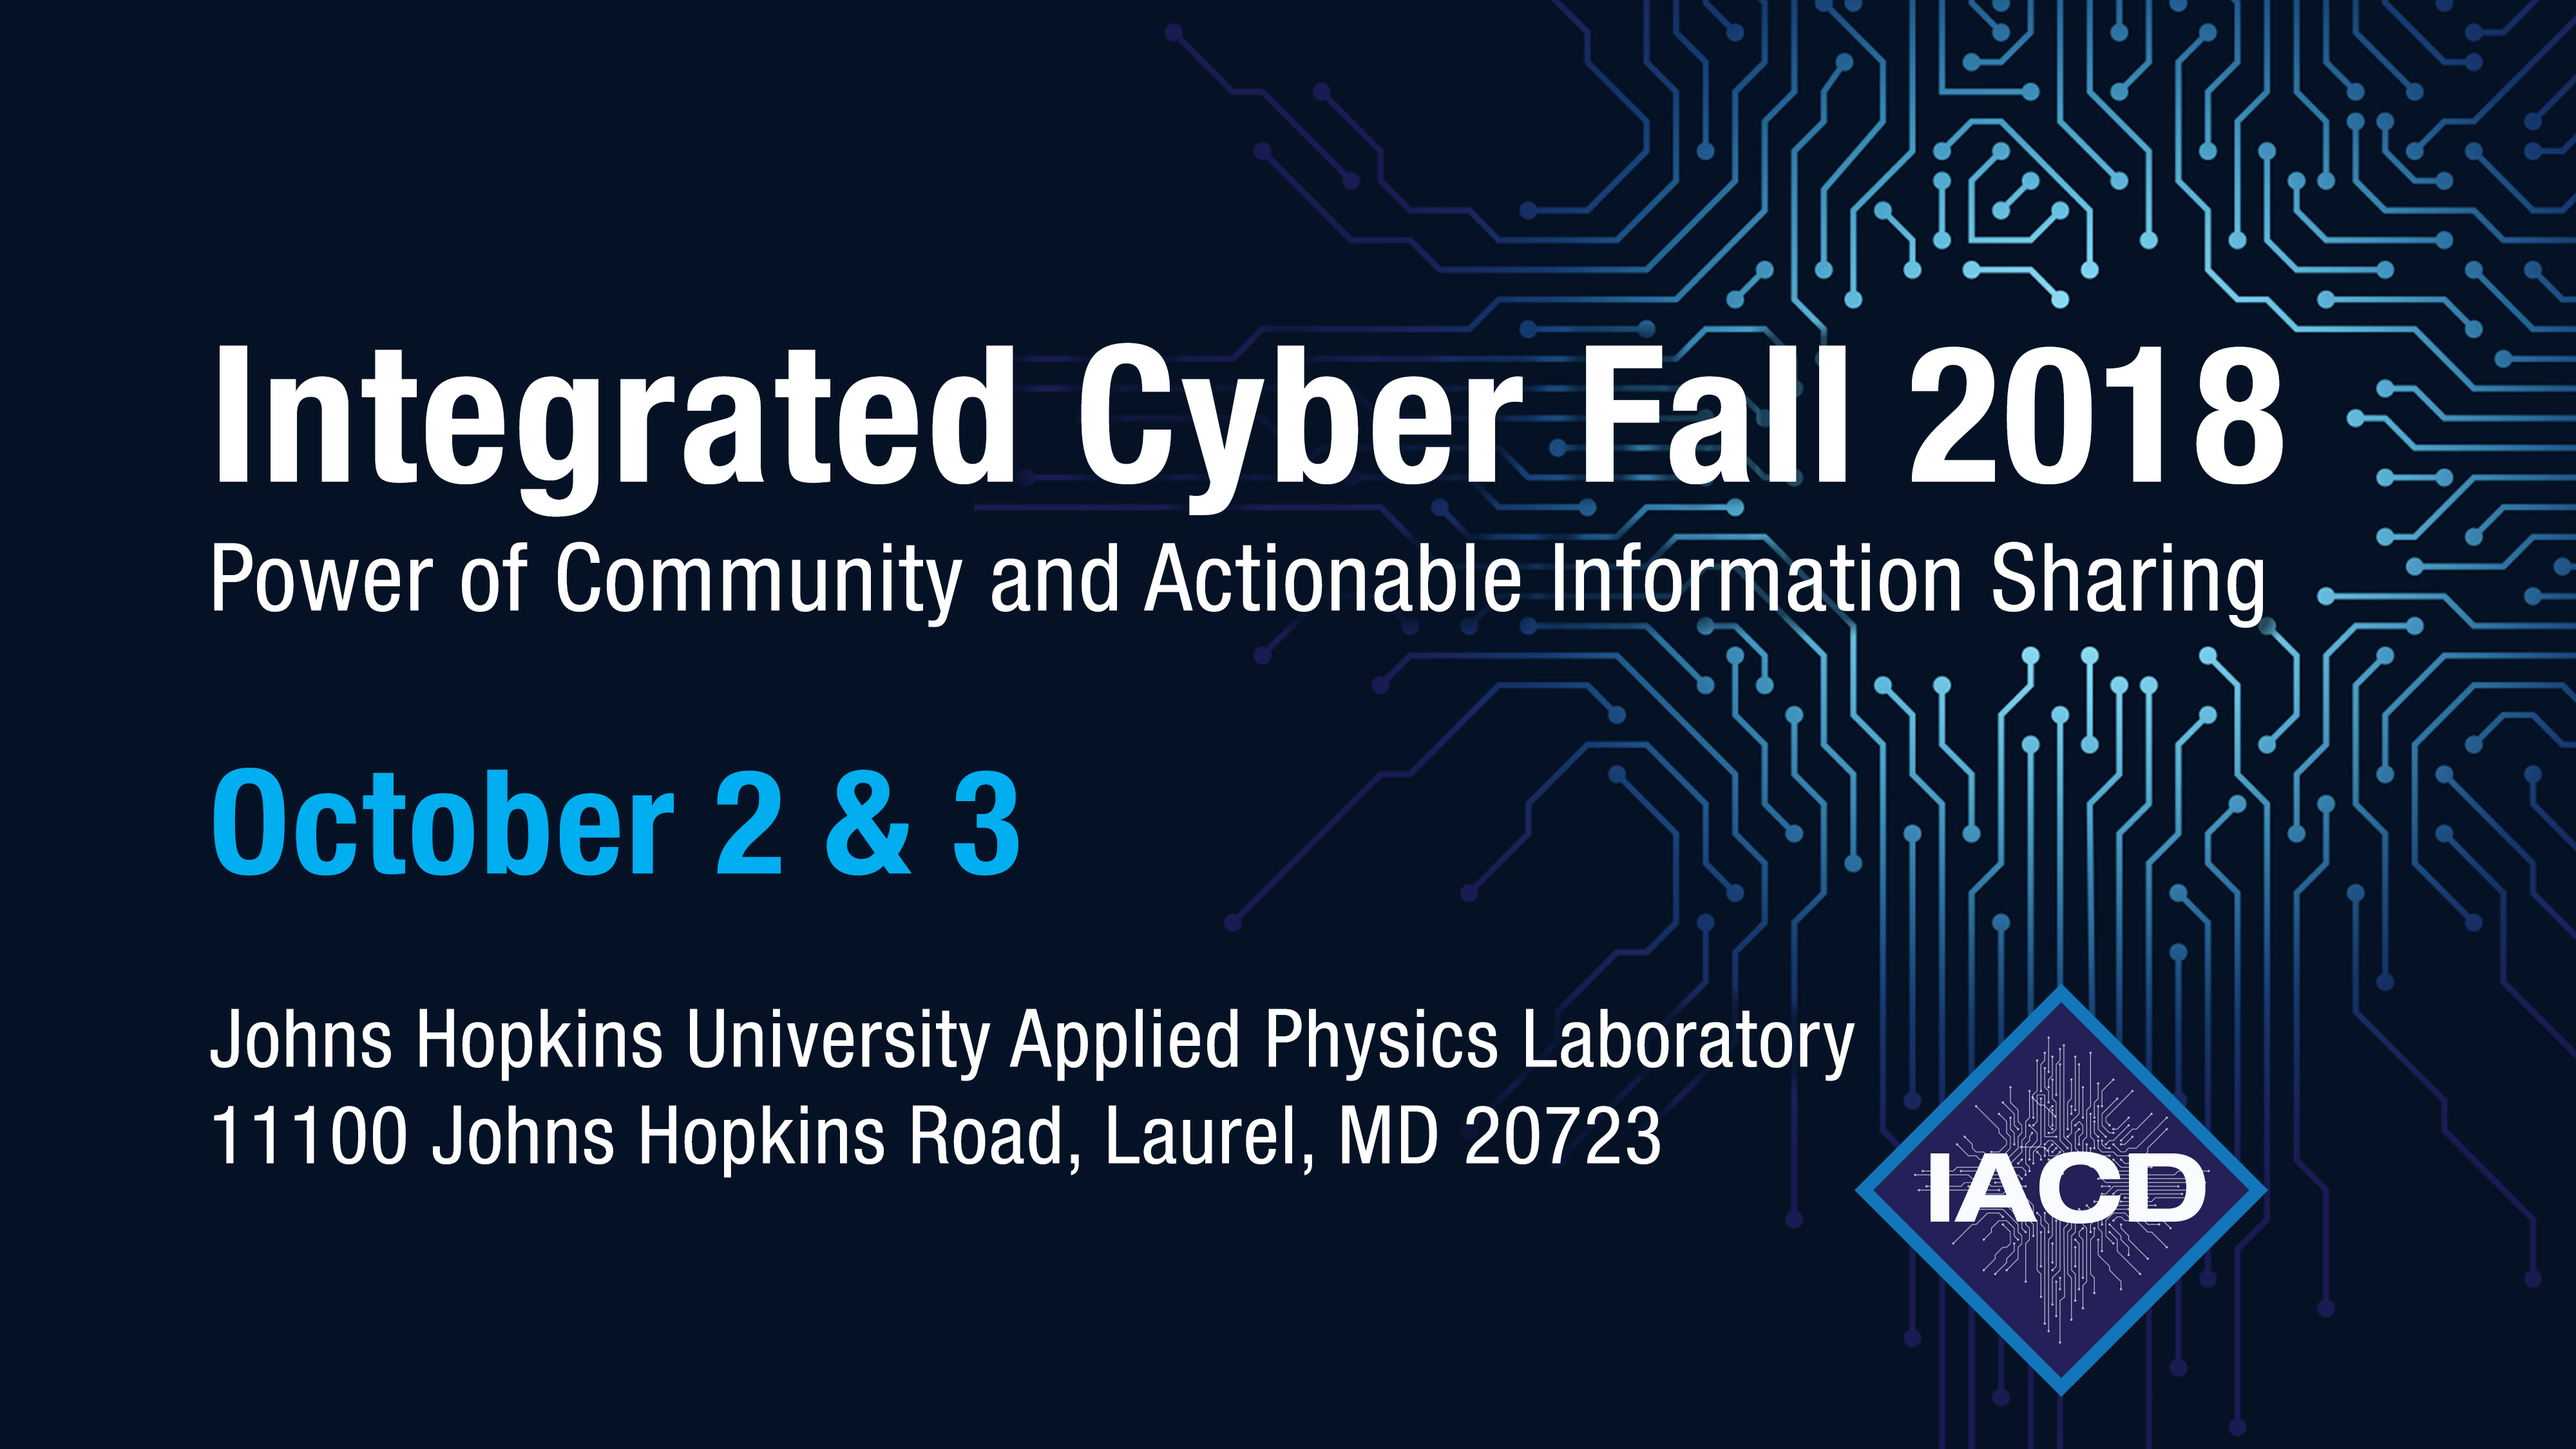 Integrated Cyber Fall 2018